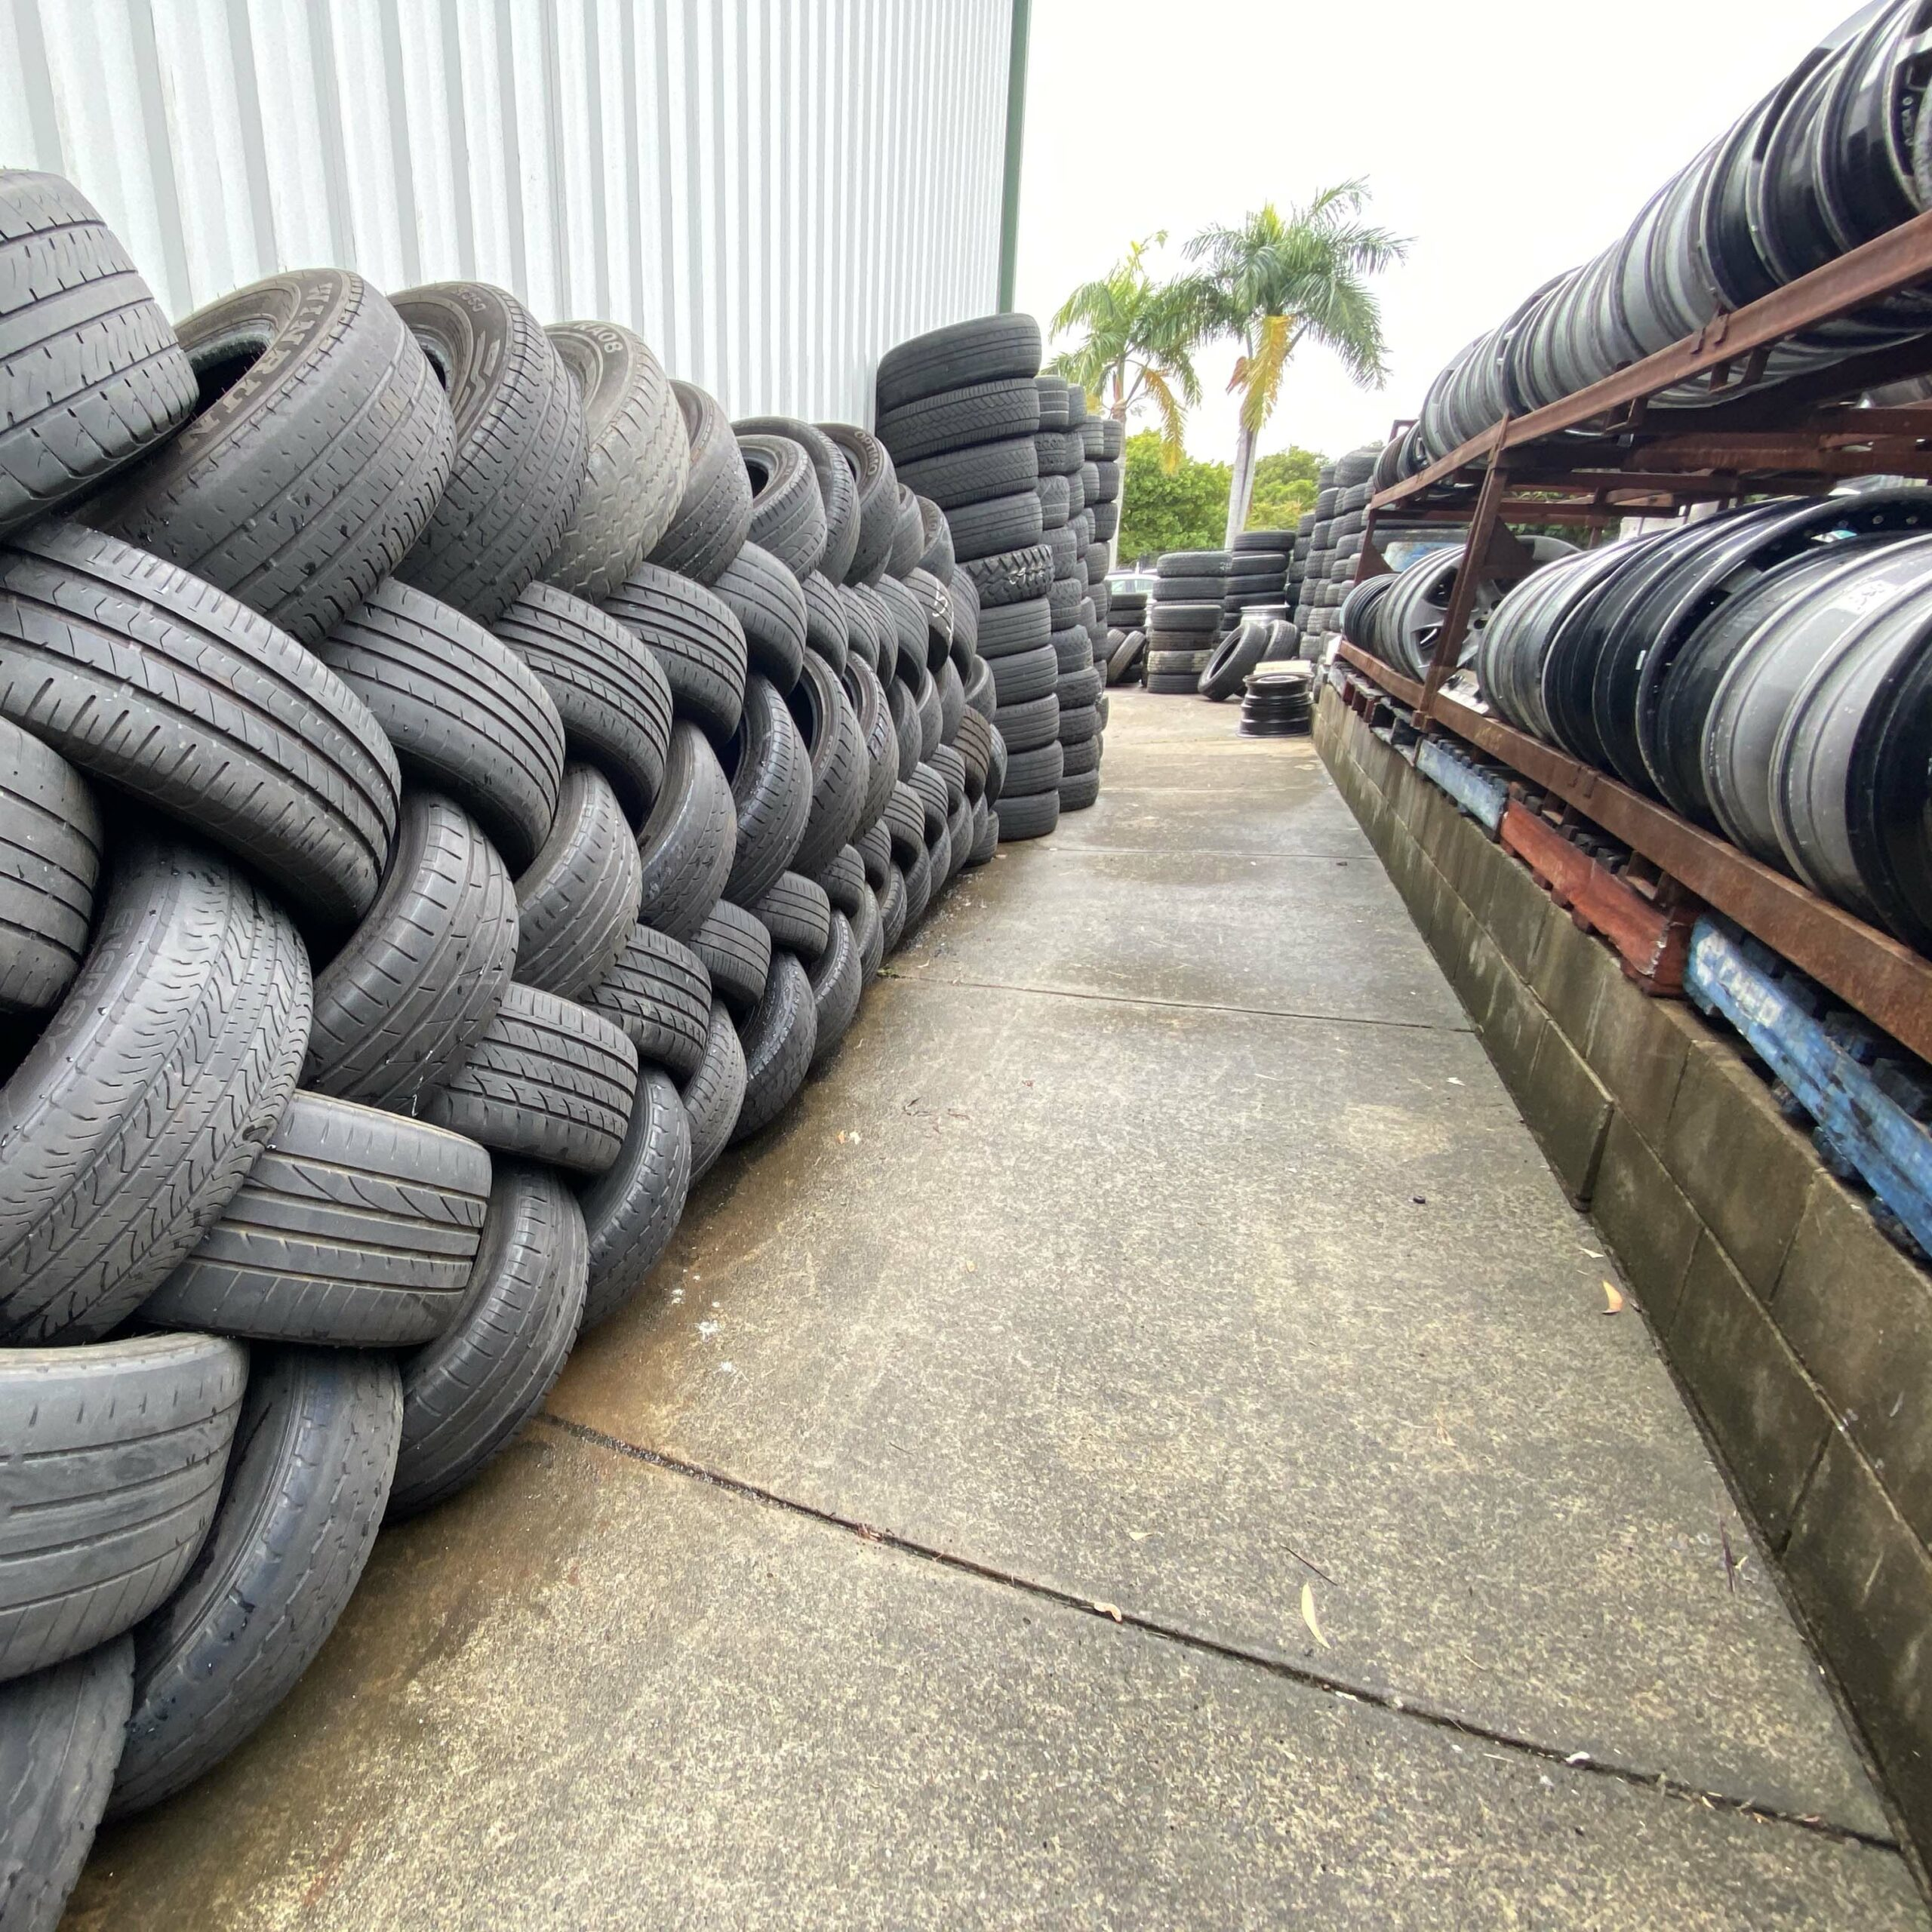 Rows of tyres stacked up outside the Branigans Burleigh Heads tyre shop in the Gold Coast.